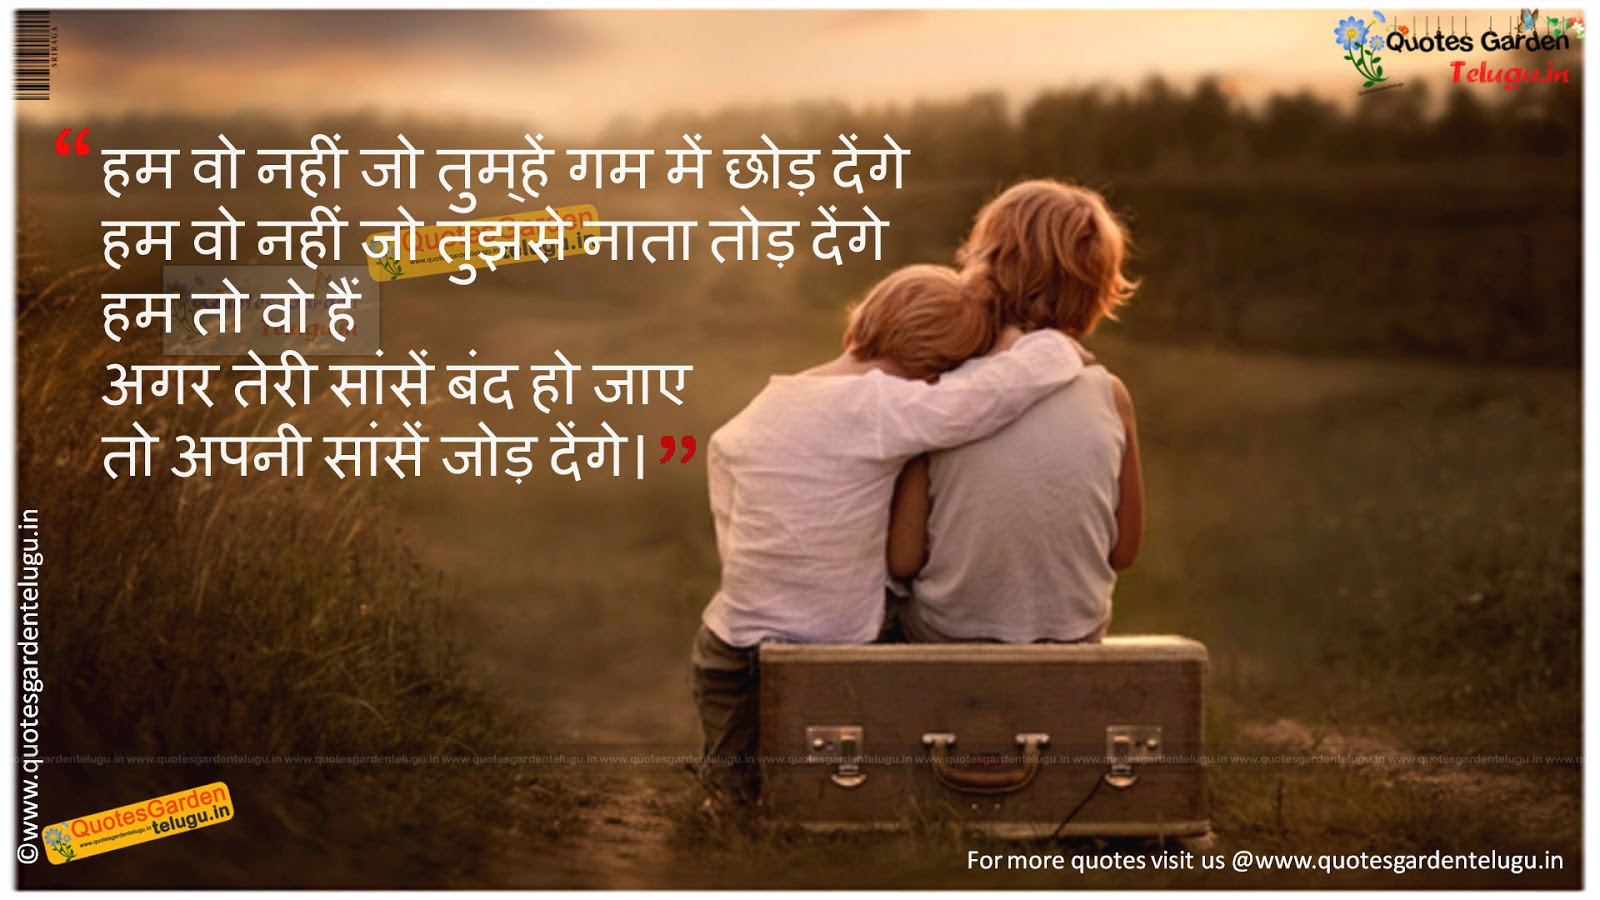 Heart Touching Quotes In Hindi For Life Rodentsolutions